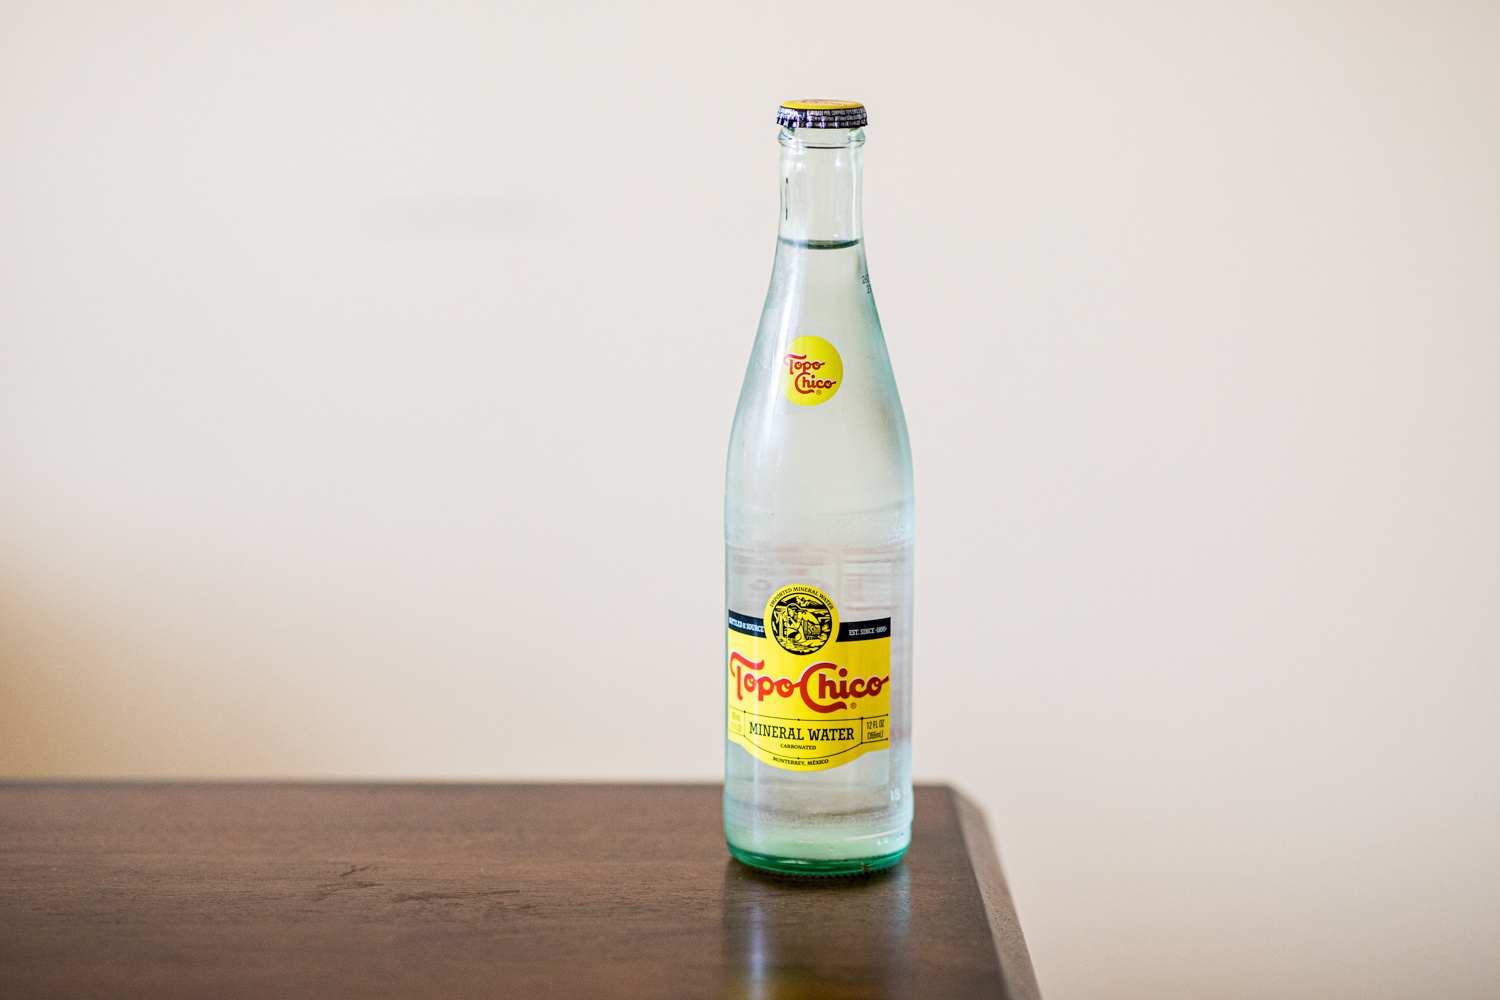 Topo Chico prior to consumption…